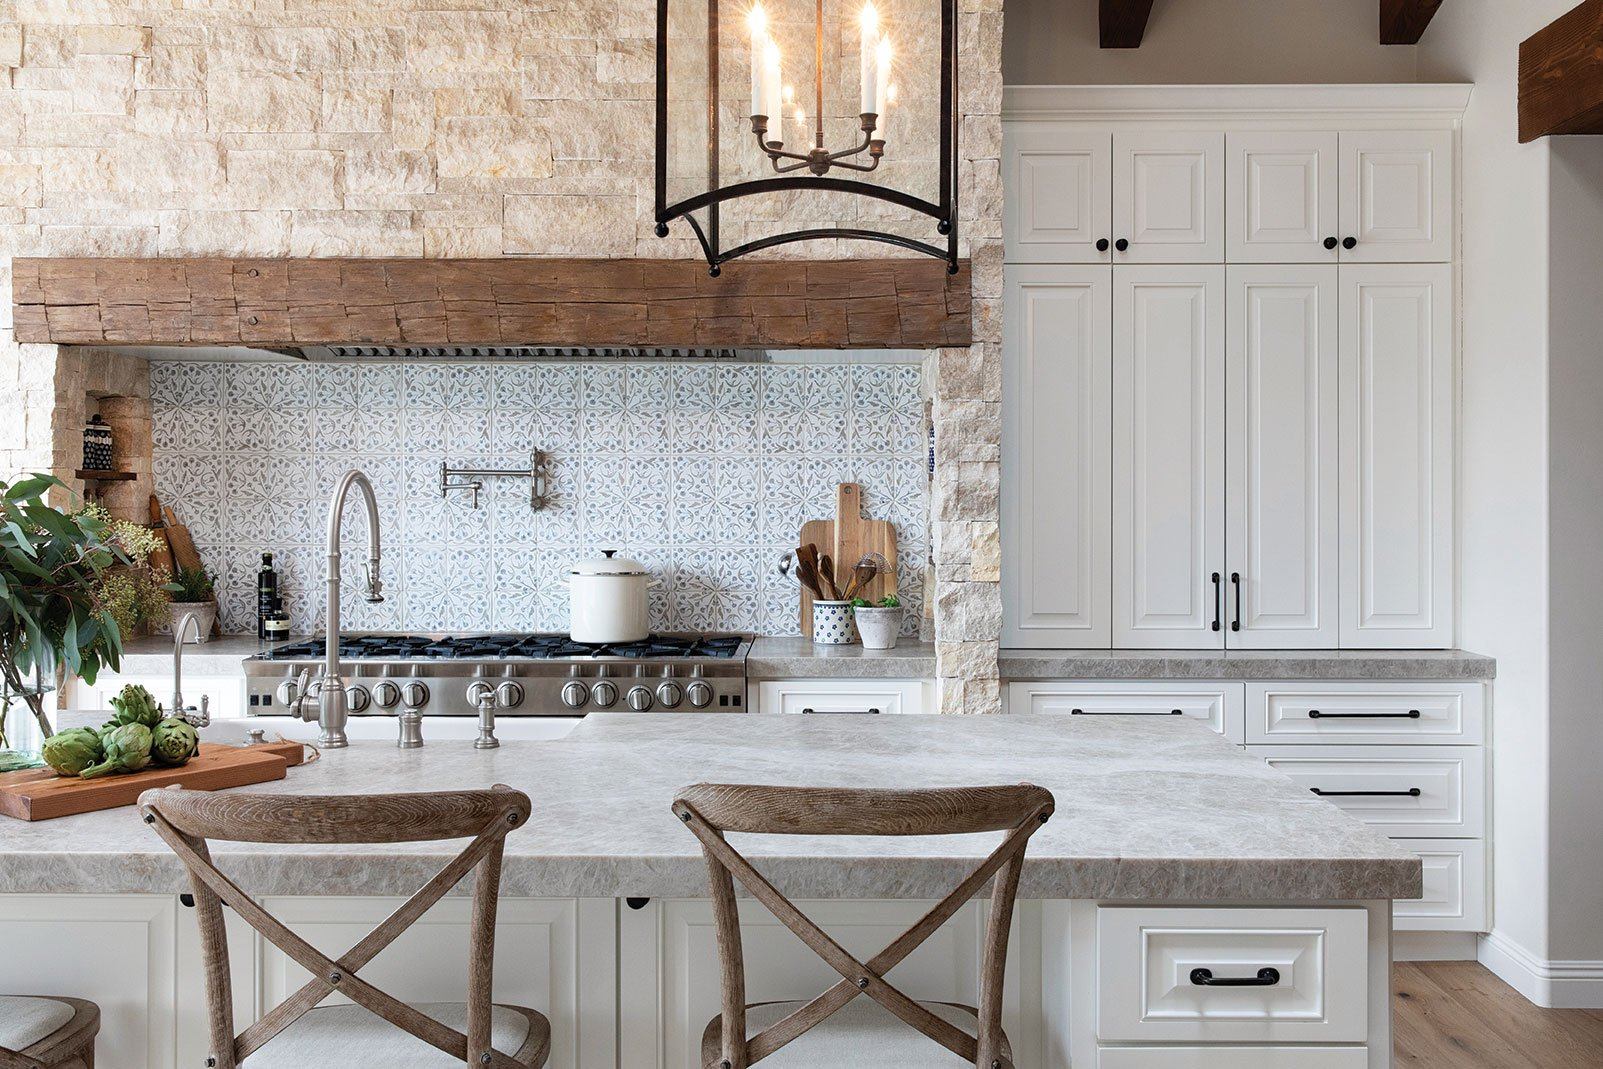 hand painted tile anne rae design kitchen in poway san diego